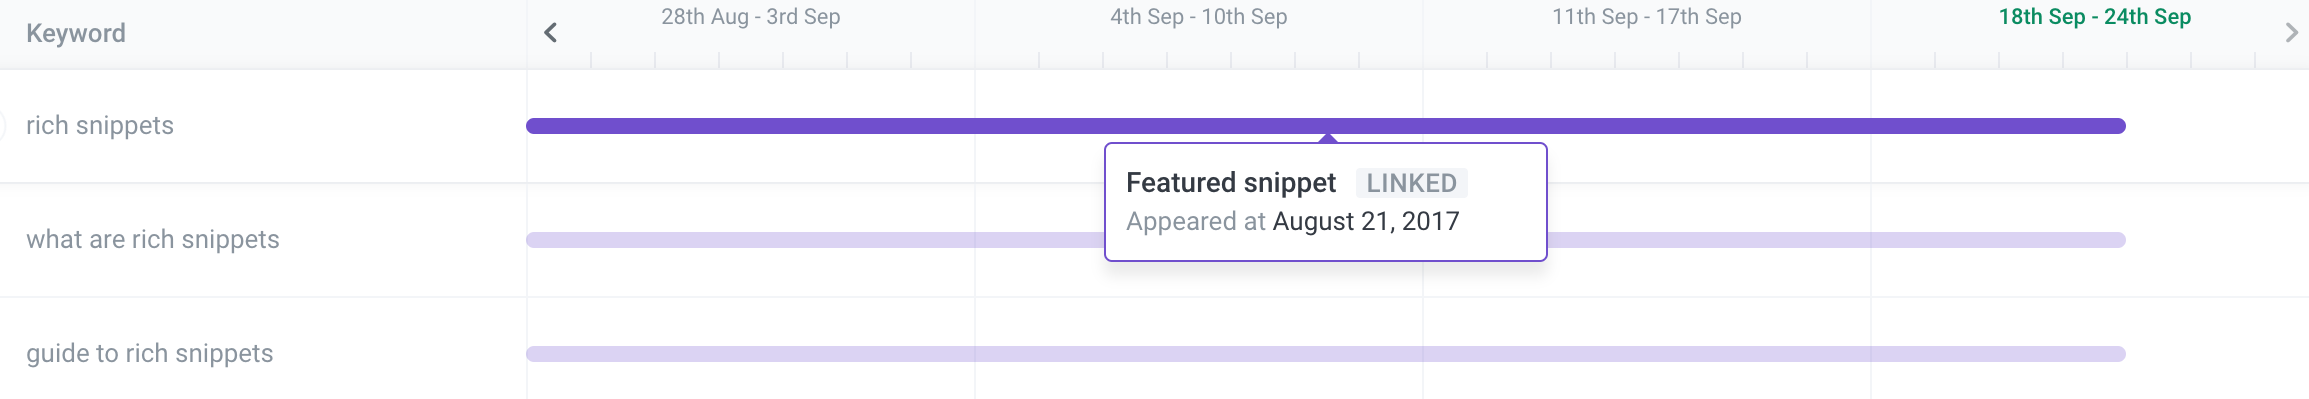 ranking for featured snippets examples